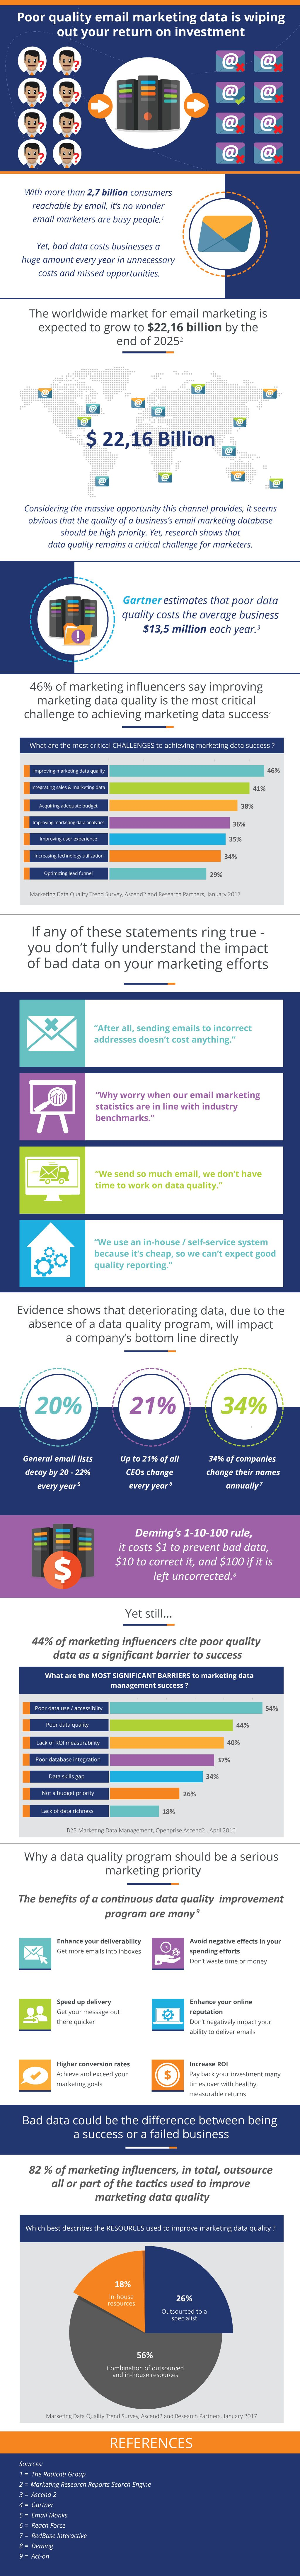 Poor Email Marketing Data Infographic